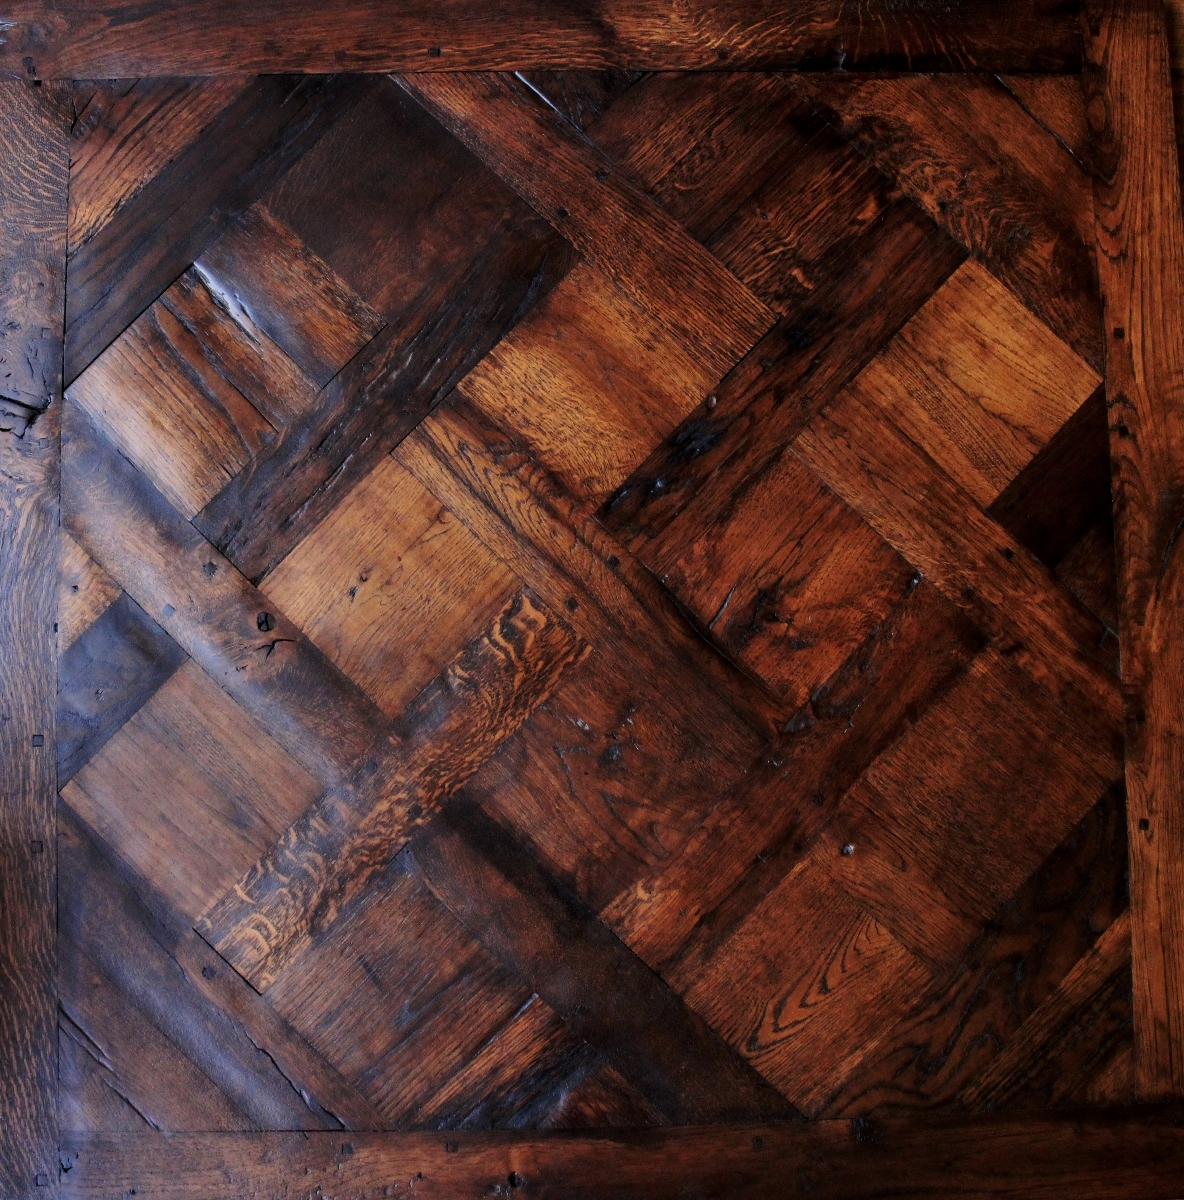 Aged and rustic Solid Oak Versailles Panels - A solid wood Versailles Parquet Floor